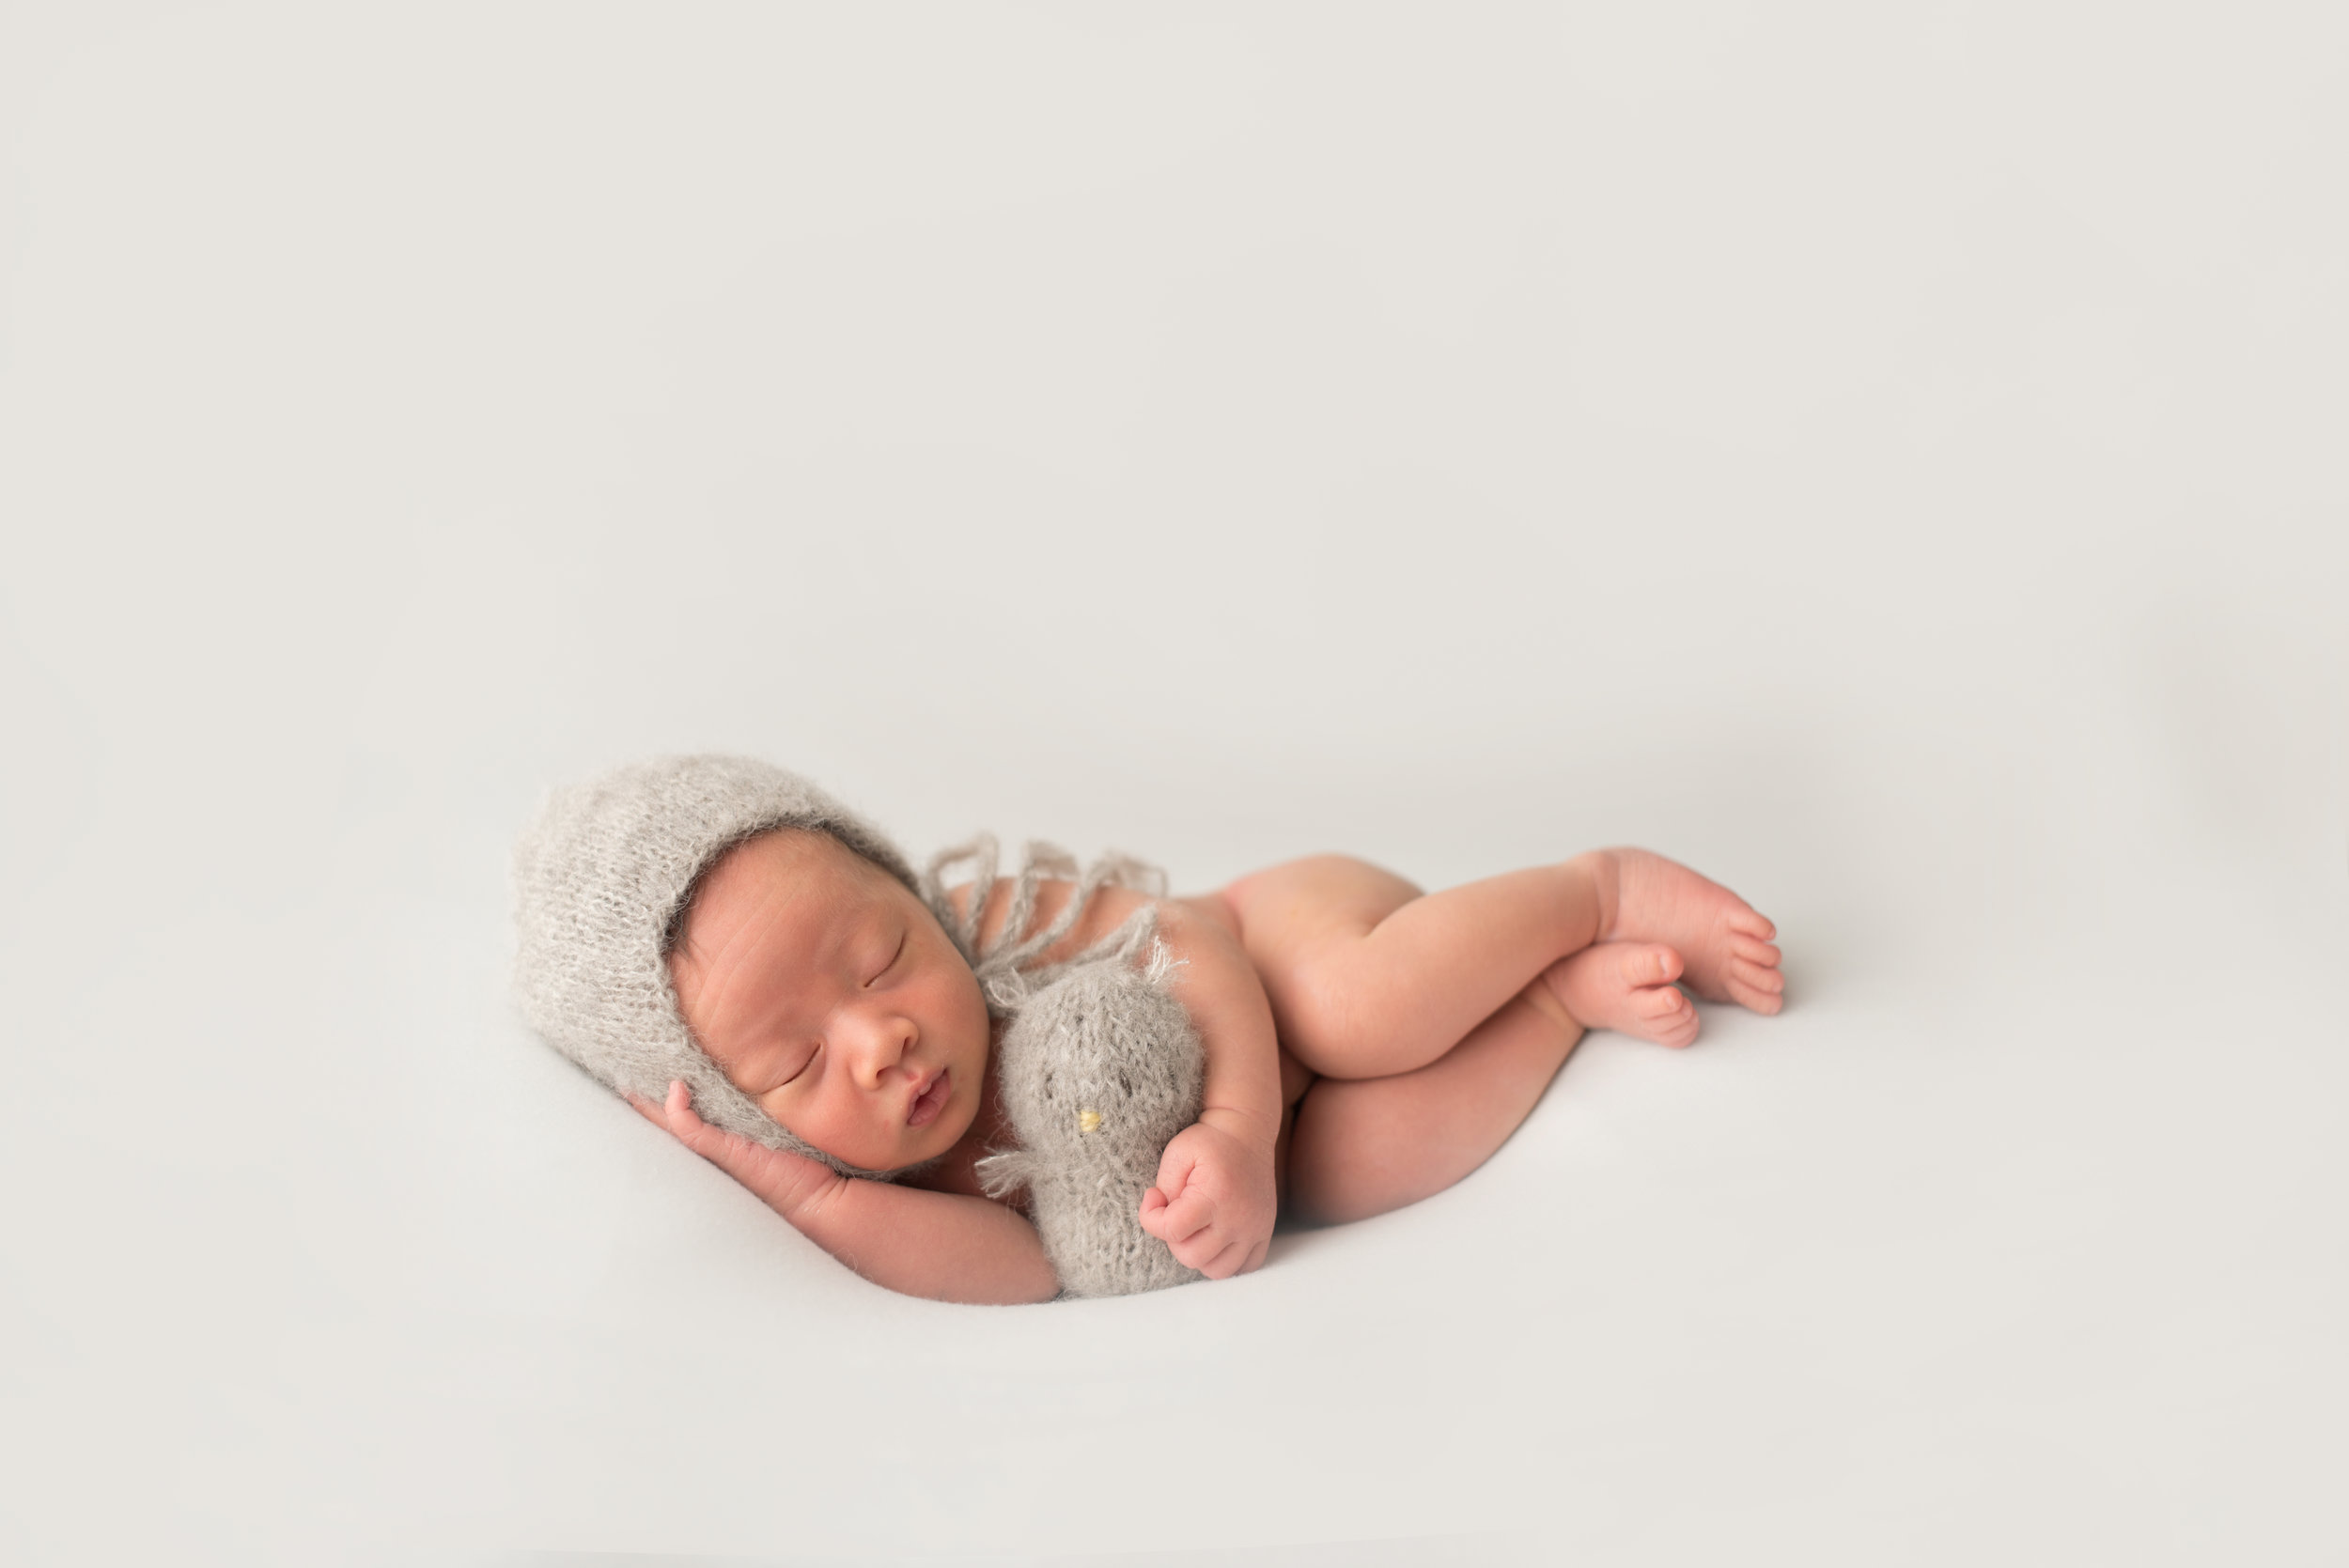 Pasadena-Boutique-Newborn-Photographer-timless-studio-newborn-session-parent-poses-102.jpg